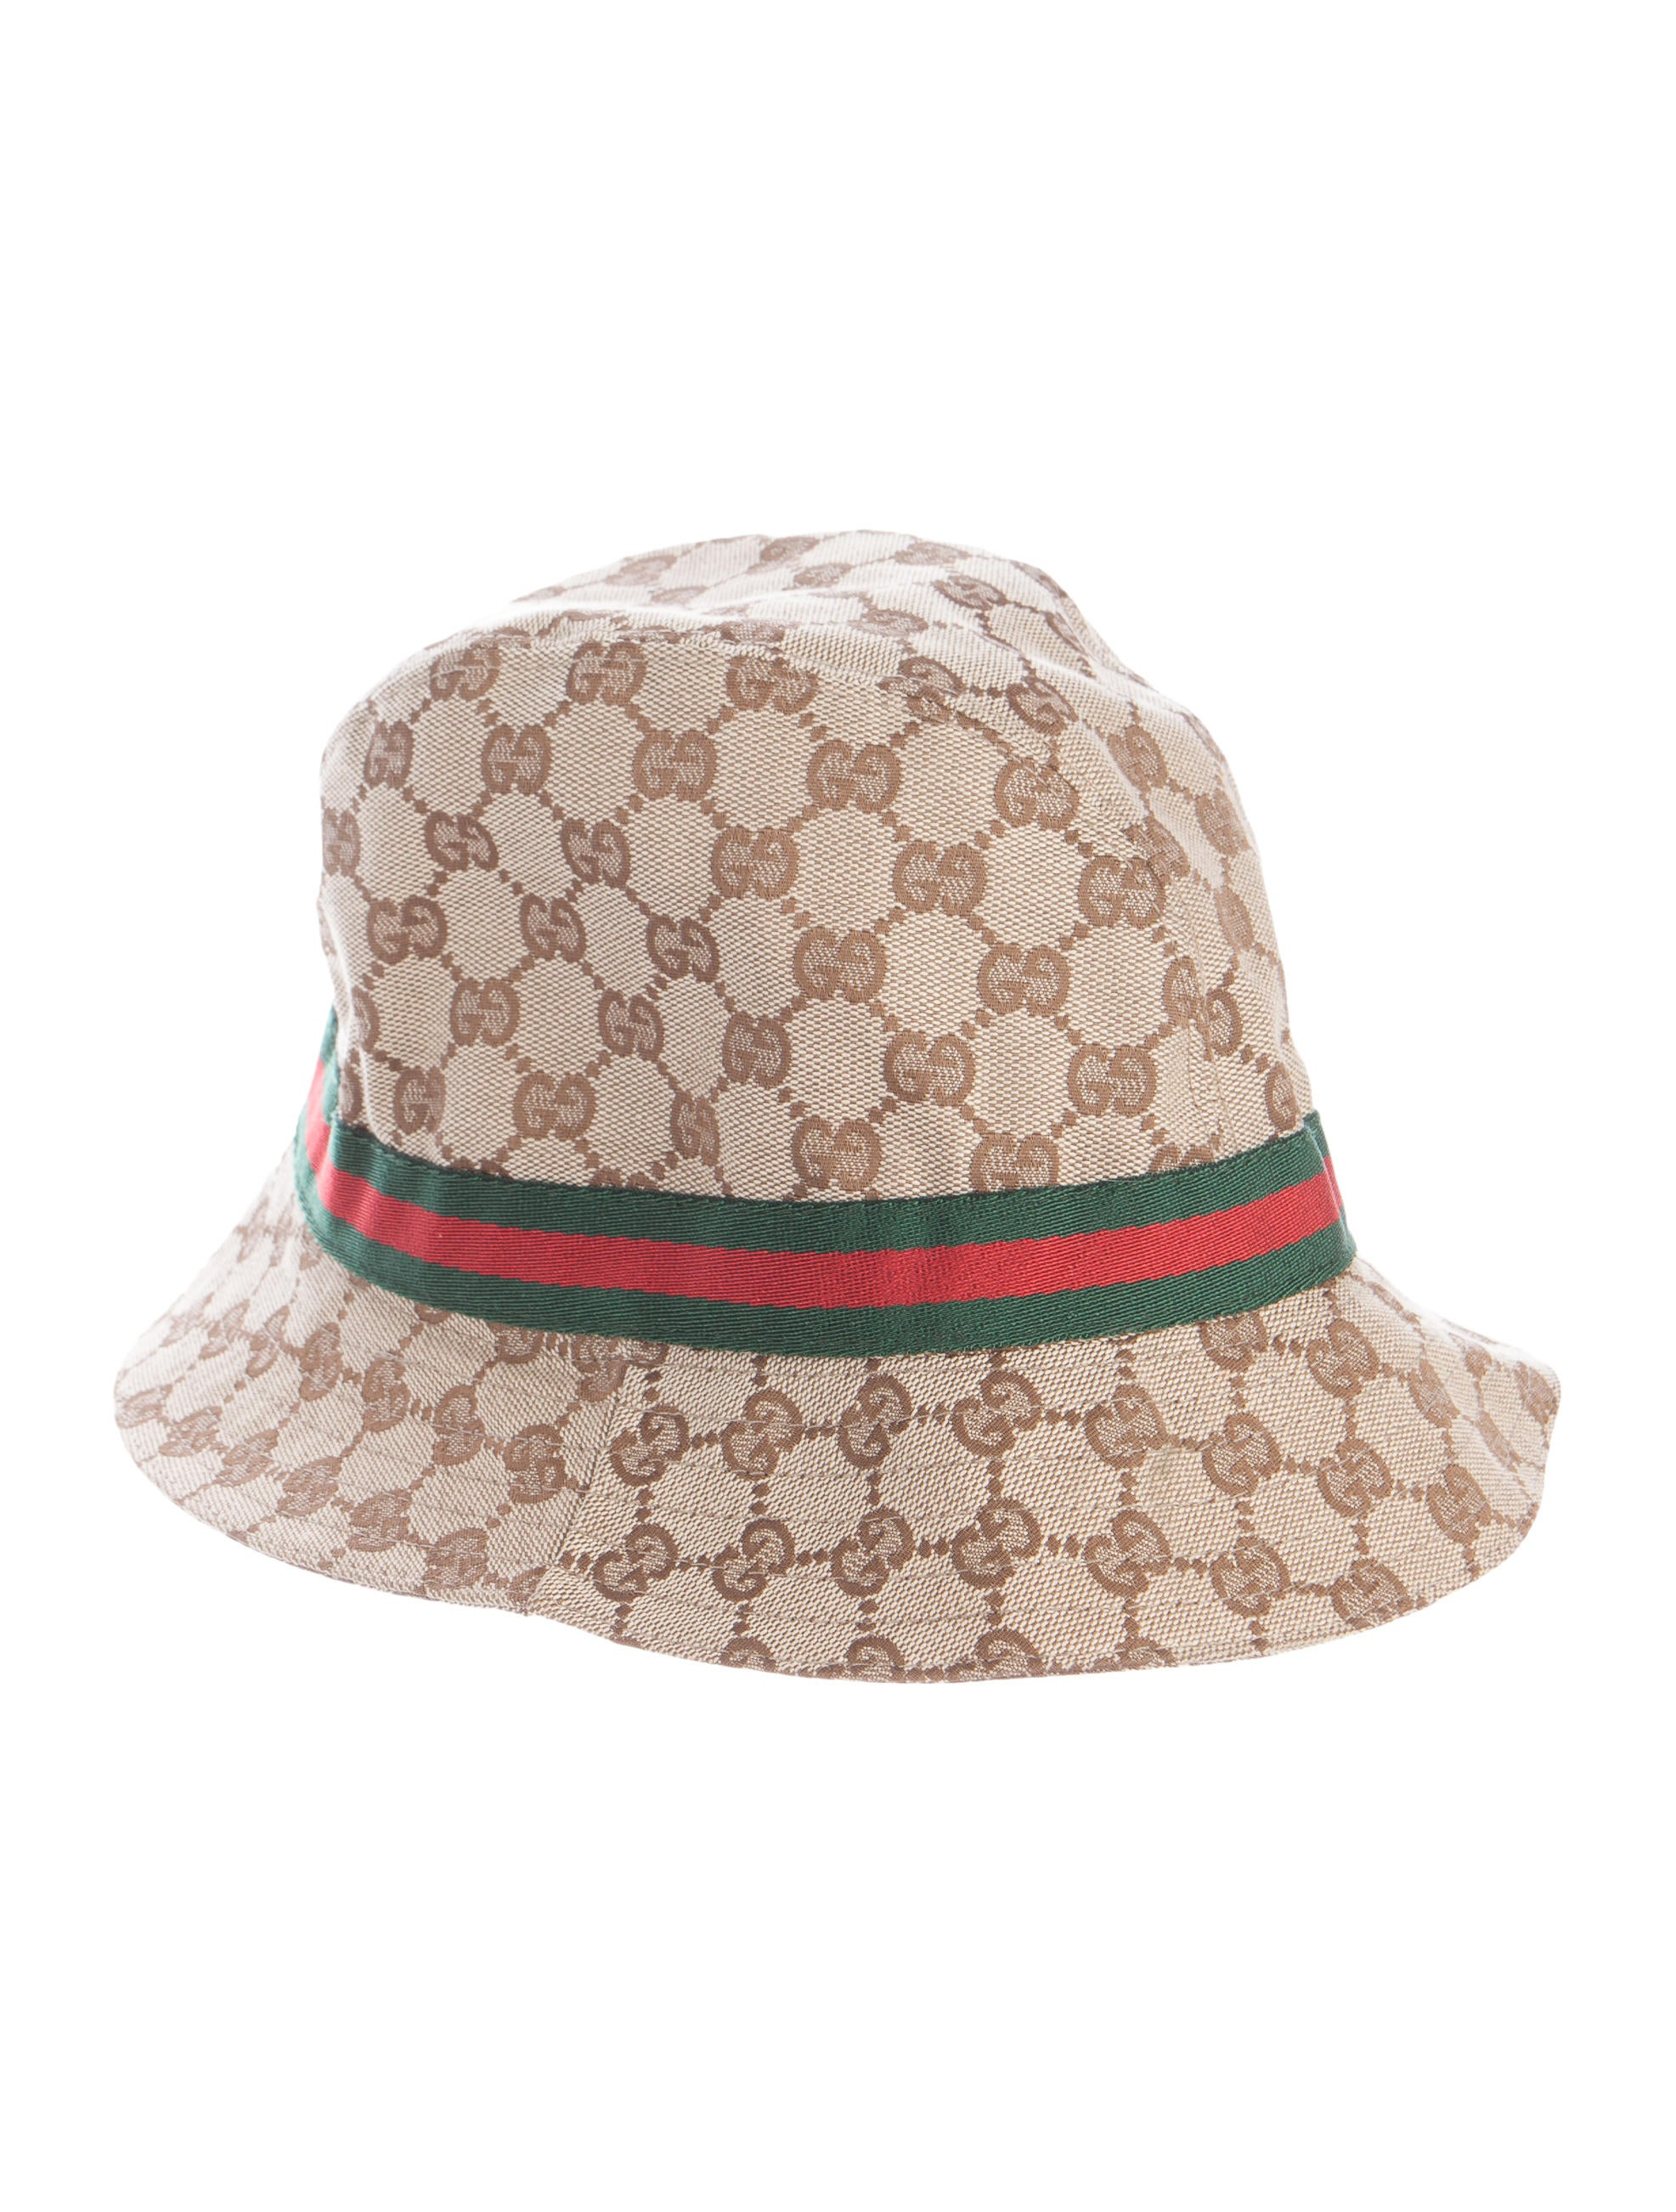 gucci gg web bucket hat accessories guc150864 the realreal. Black Bedroom Furniture Sets. Home Design Ideas